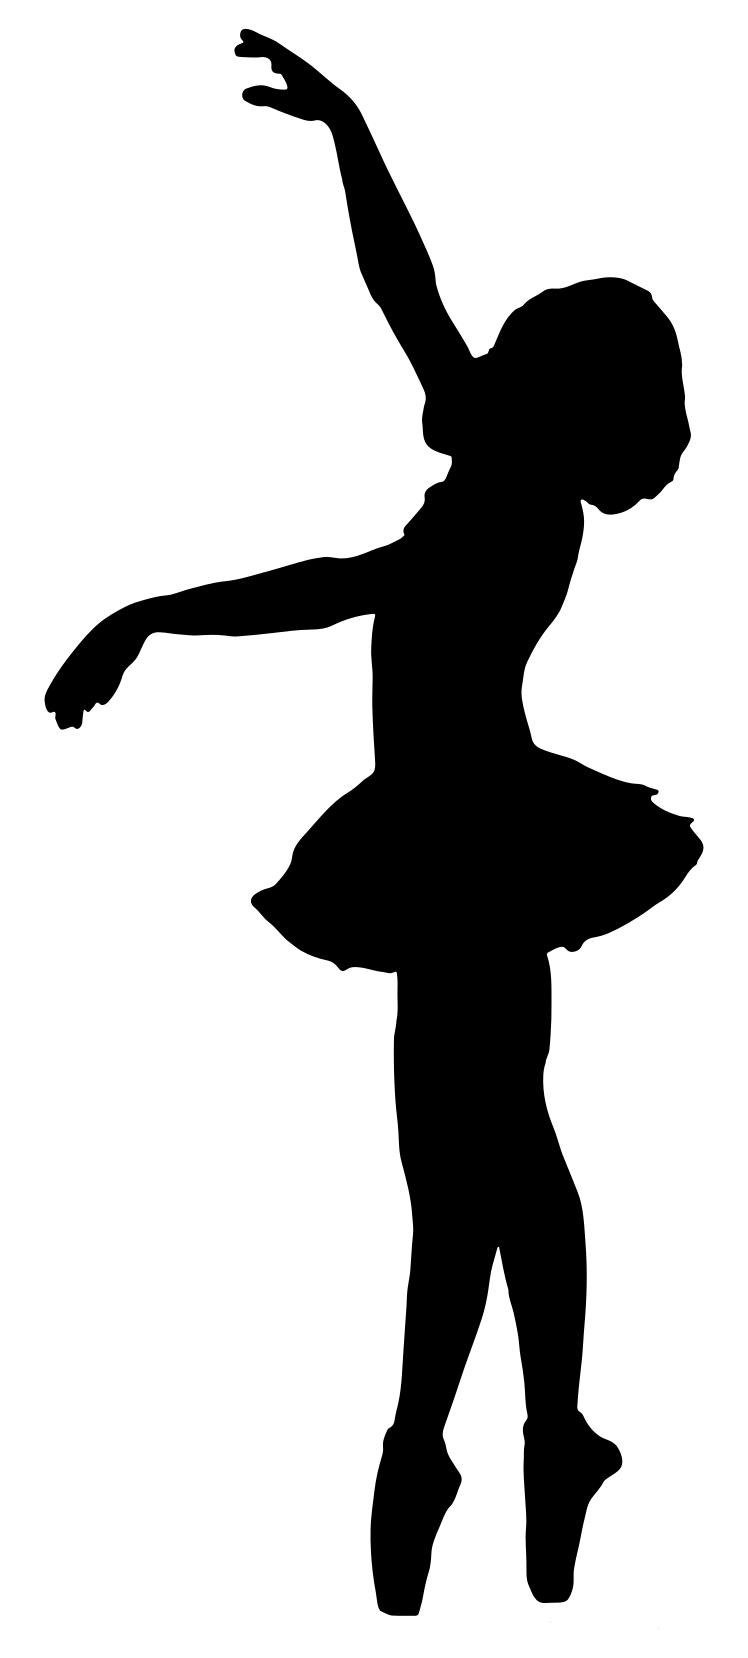 748x1658 Vintage Ballerina Silhouette Clipart